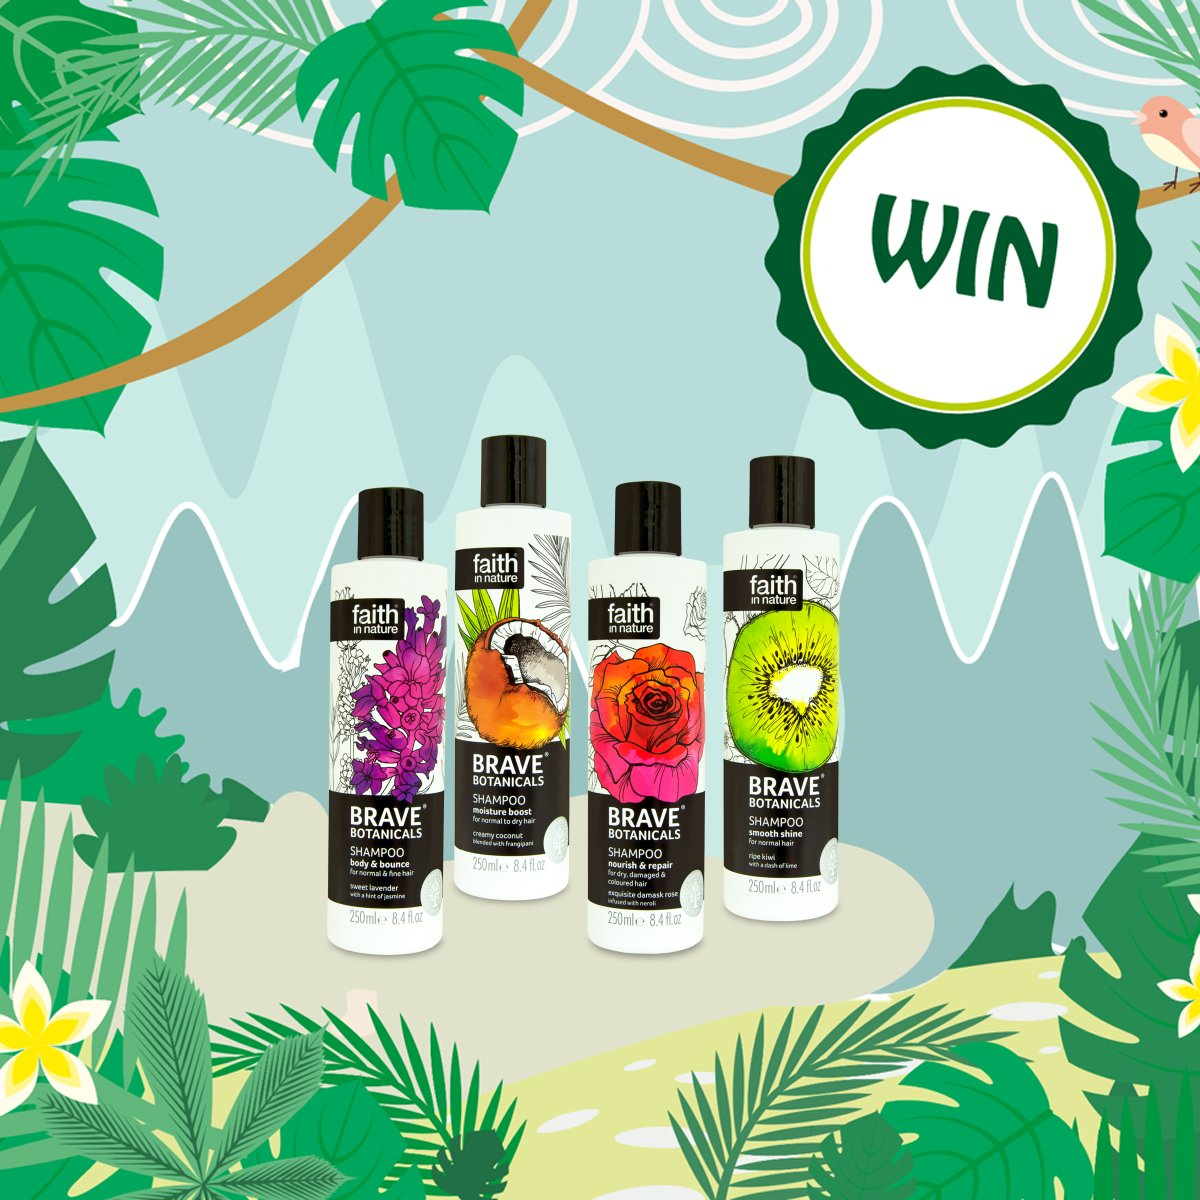 It's so hard to pick our fave @FaithInNature flavour! Let us know yours and you could win 1 of 3 shampoo bundles! https://t.co/19hZ8nbVMf